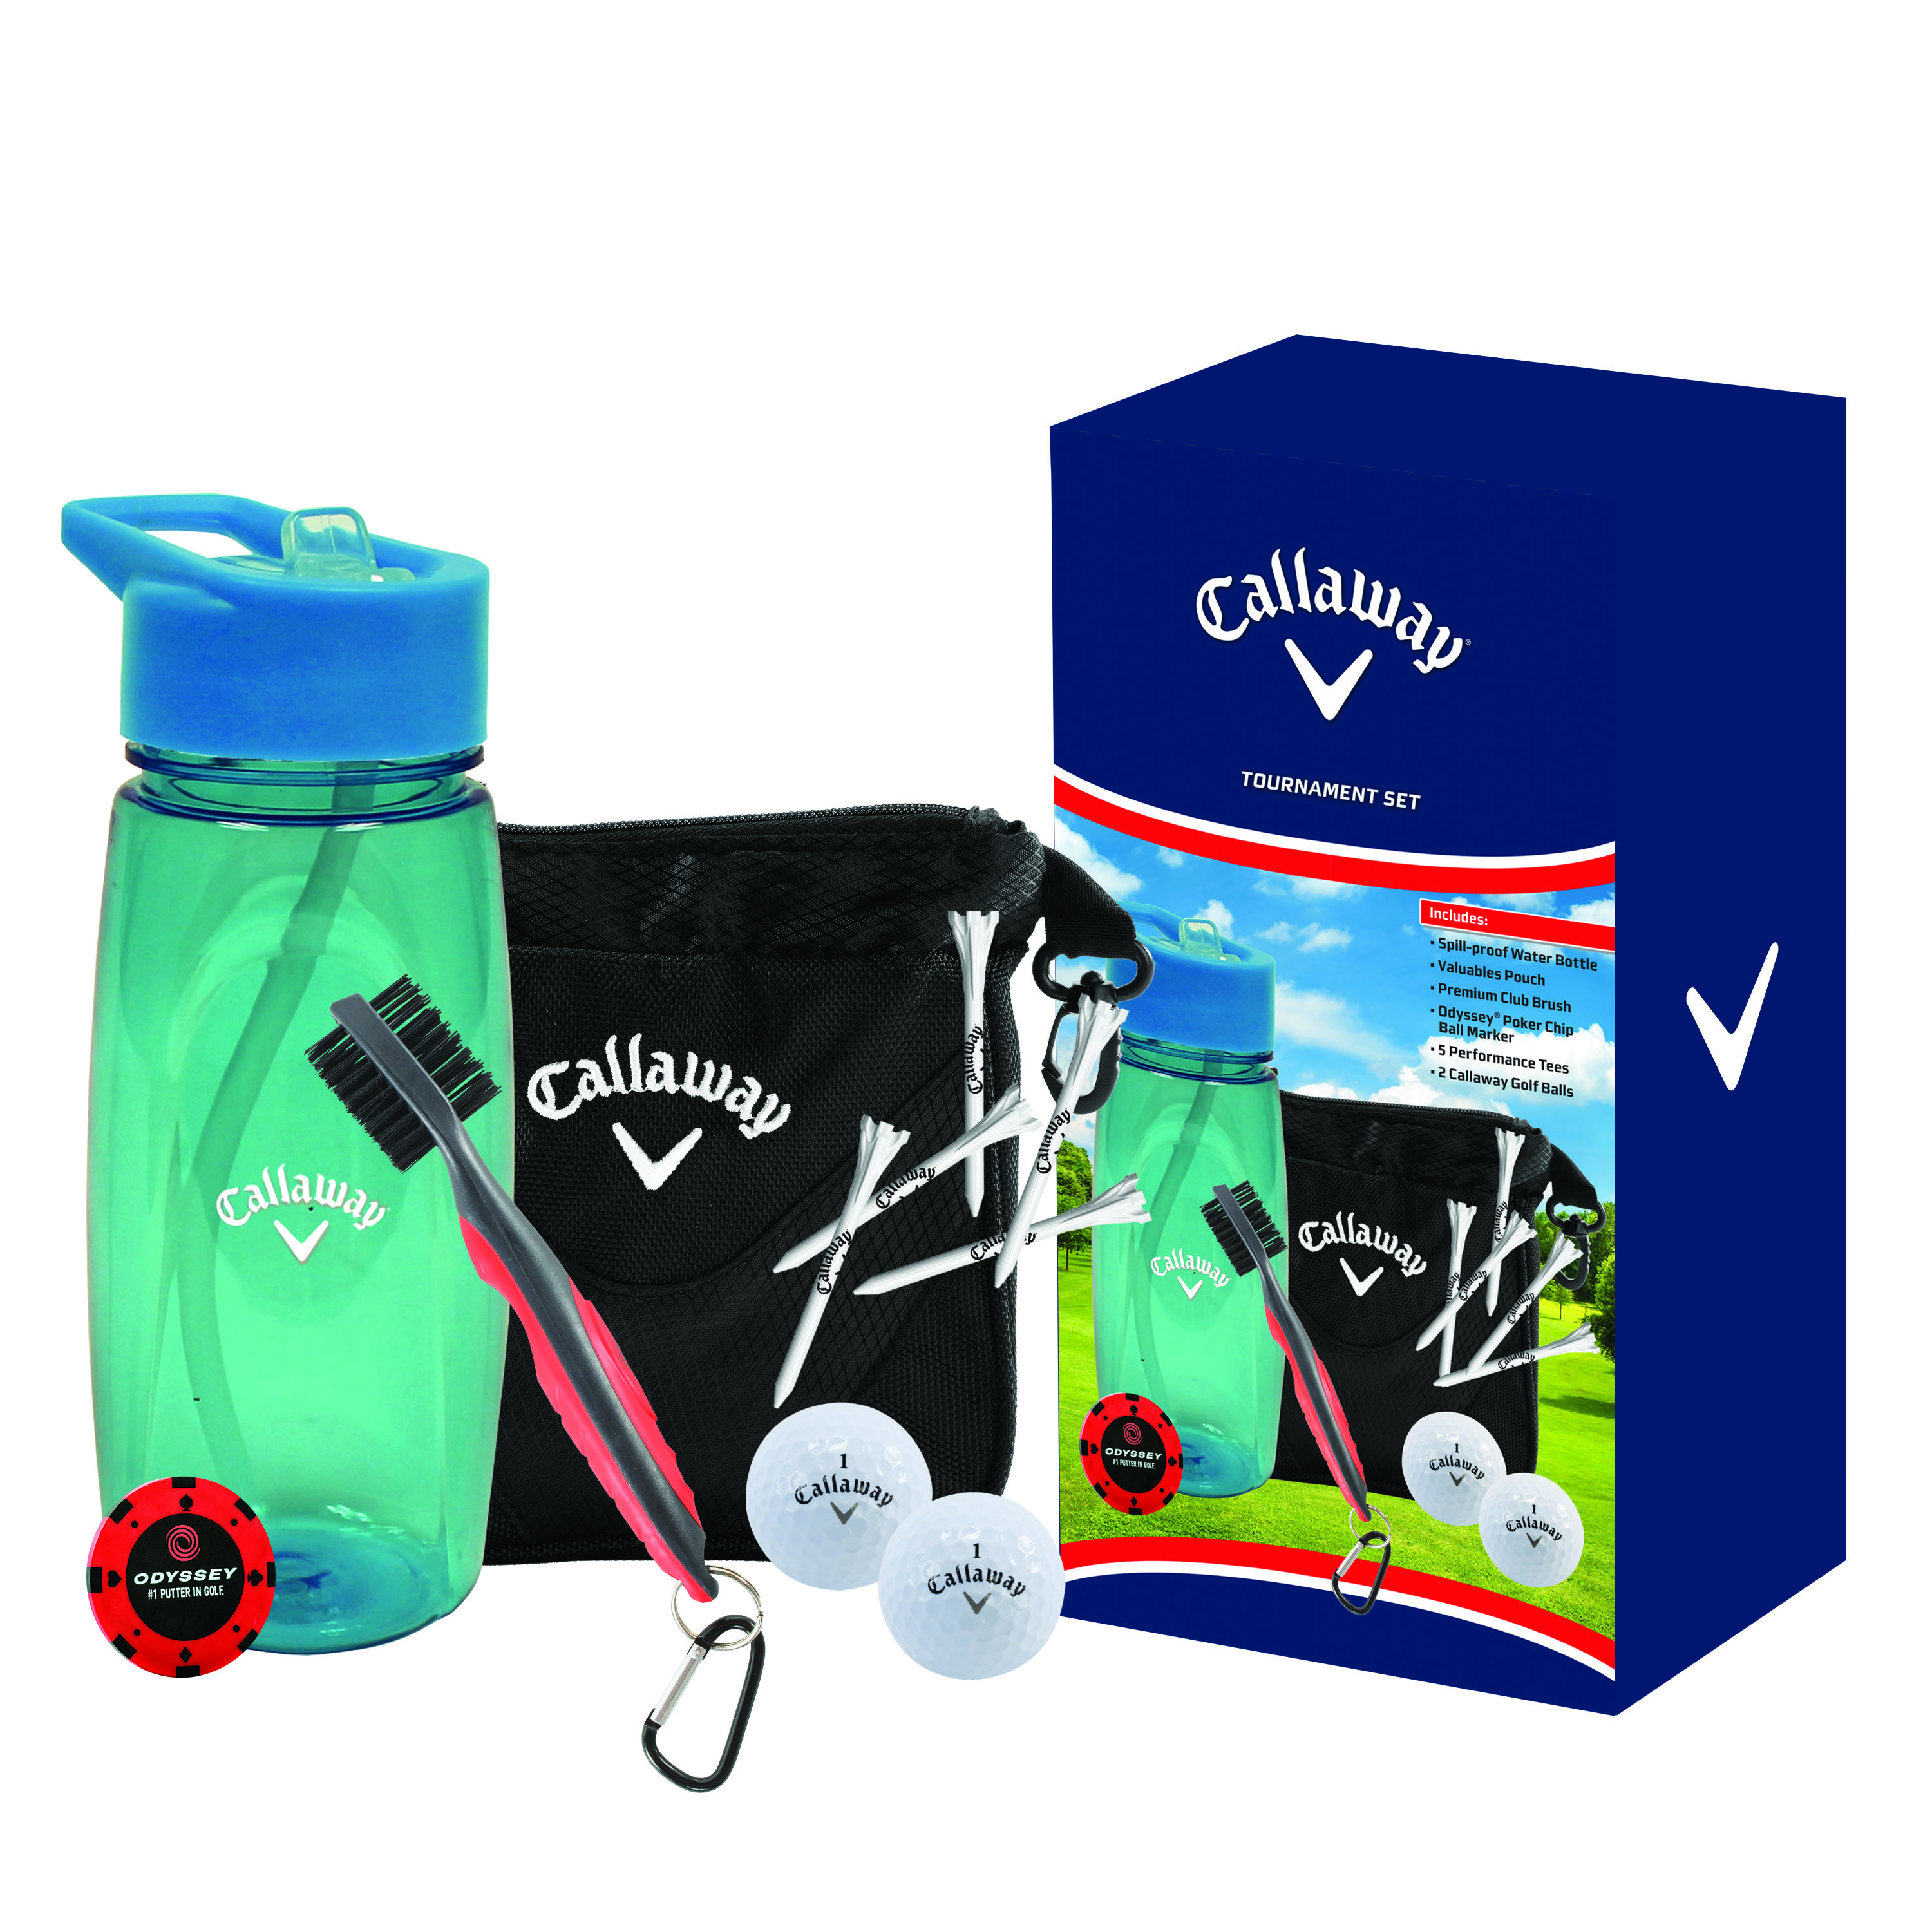 Shop a wide selection of Callaway Golf Gifts at DICK'S Sporting Goods and order online for the finest quality products from the top brands you trust.